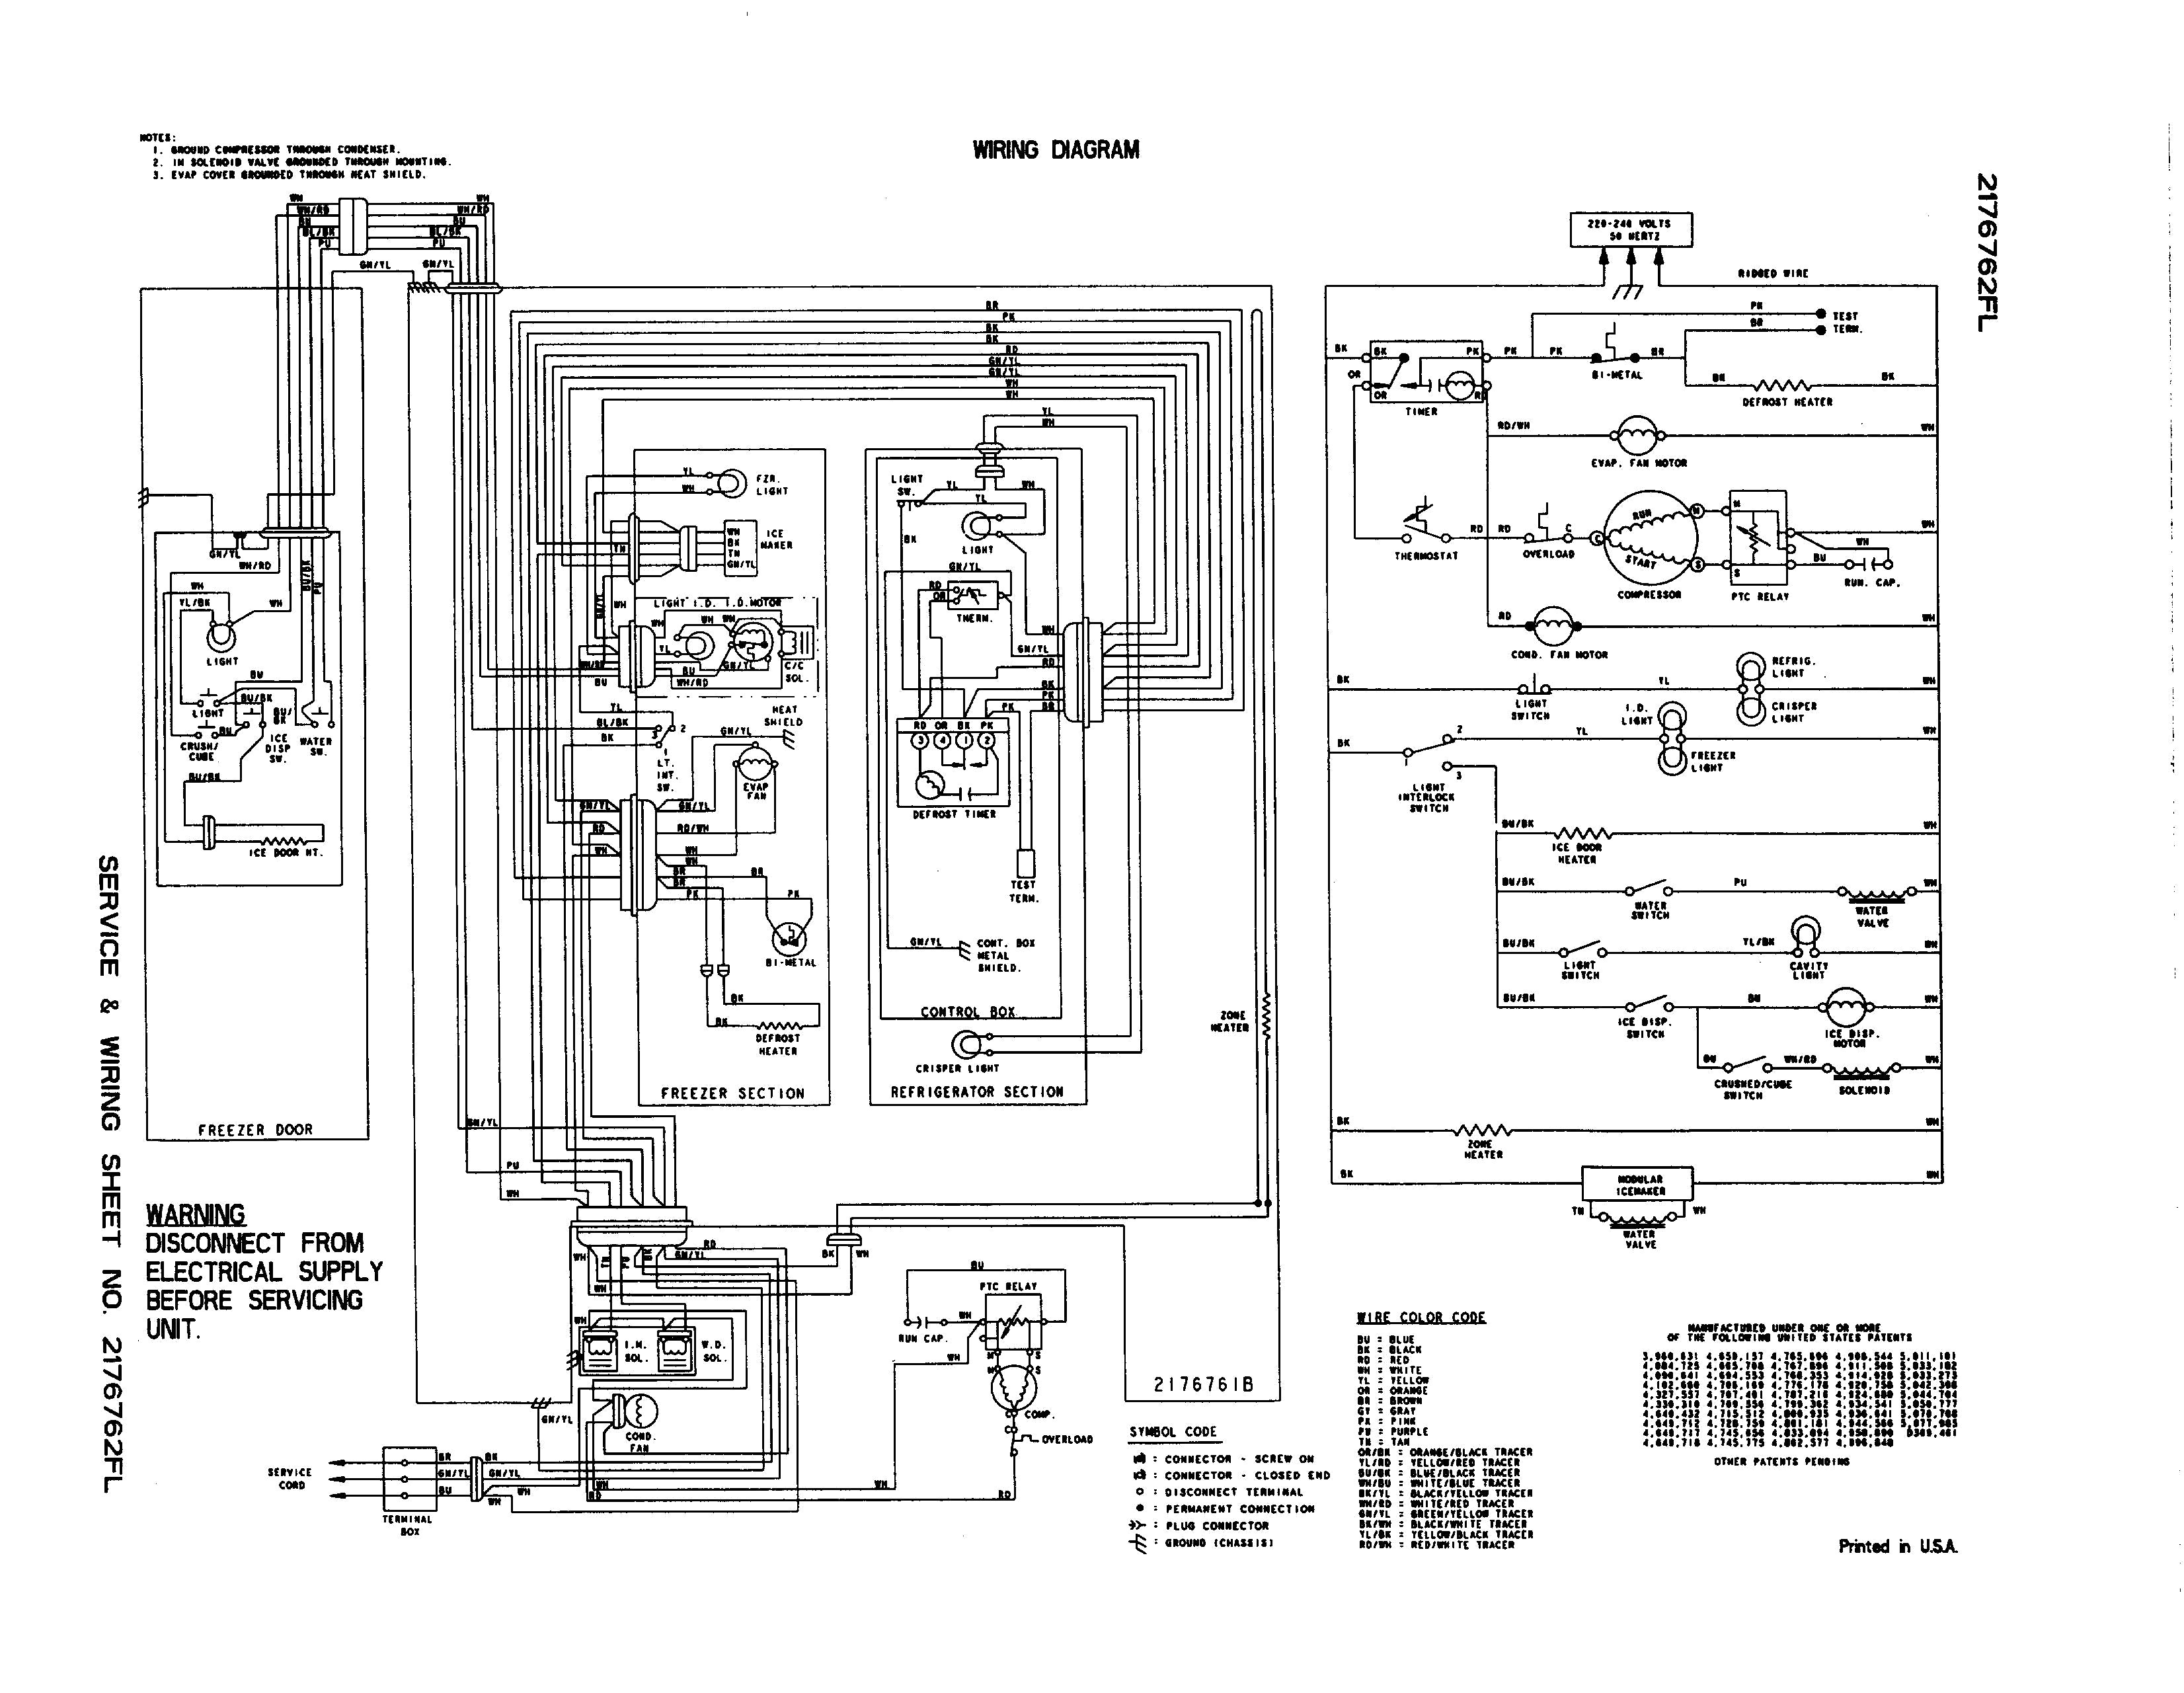 john deere 455 wiring diagram solar panel for home 4020 starter my